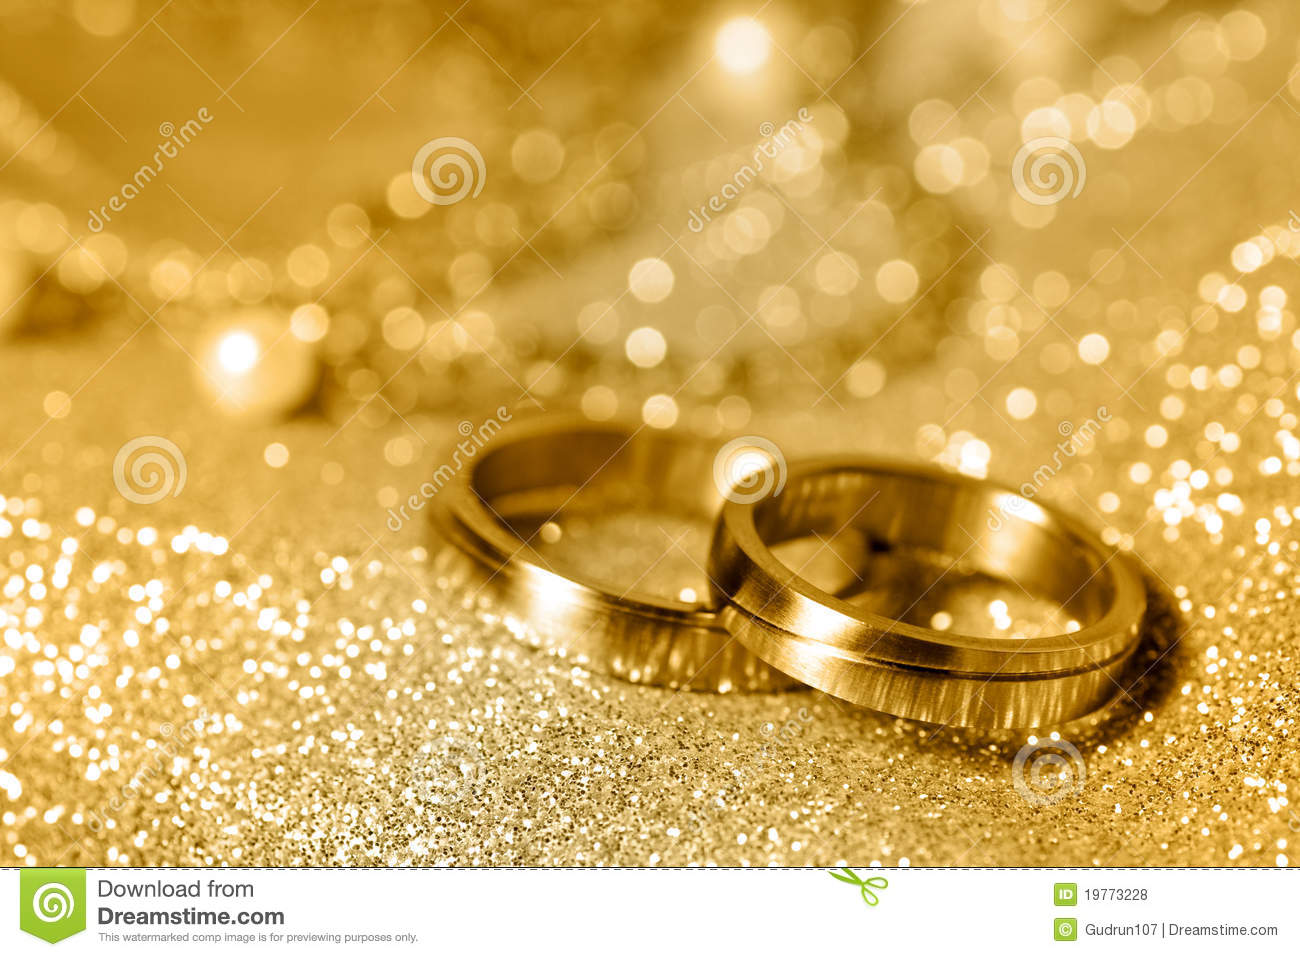 Wedding Rings In Gold Royalty Free Stock Photos